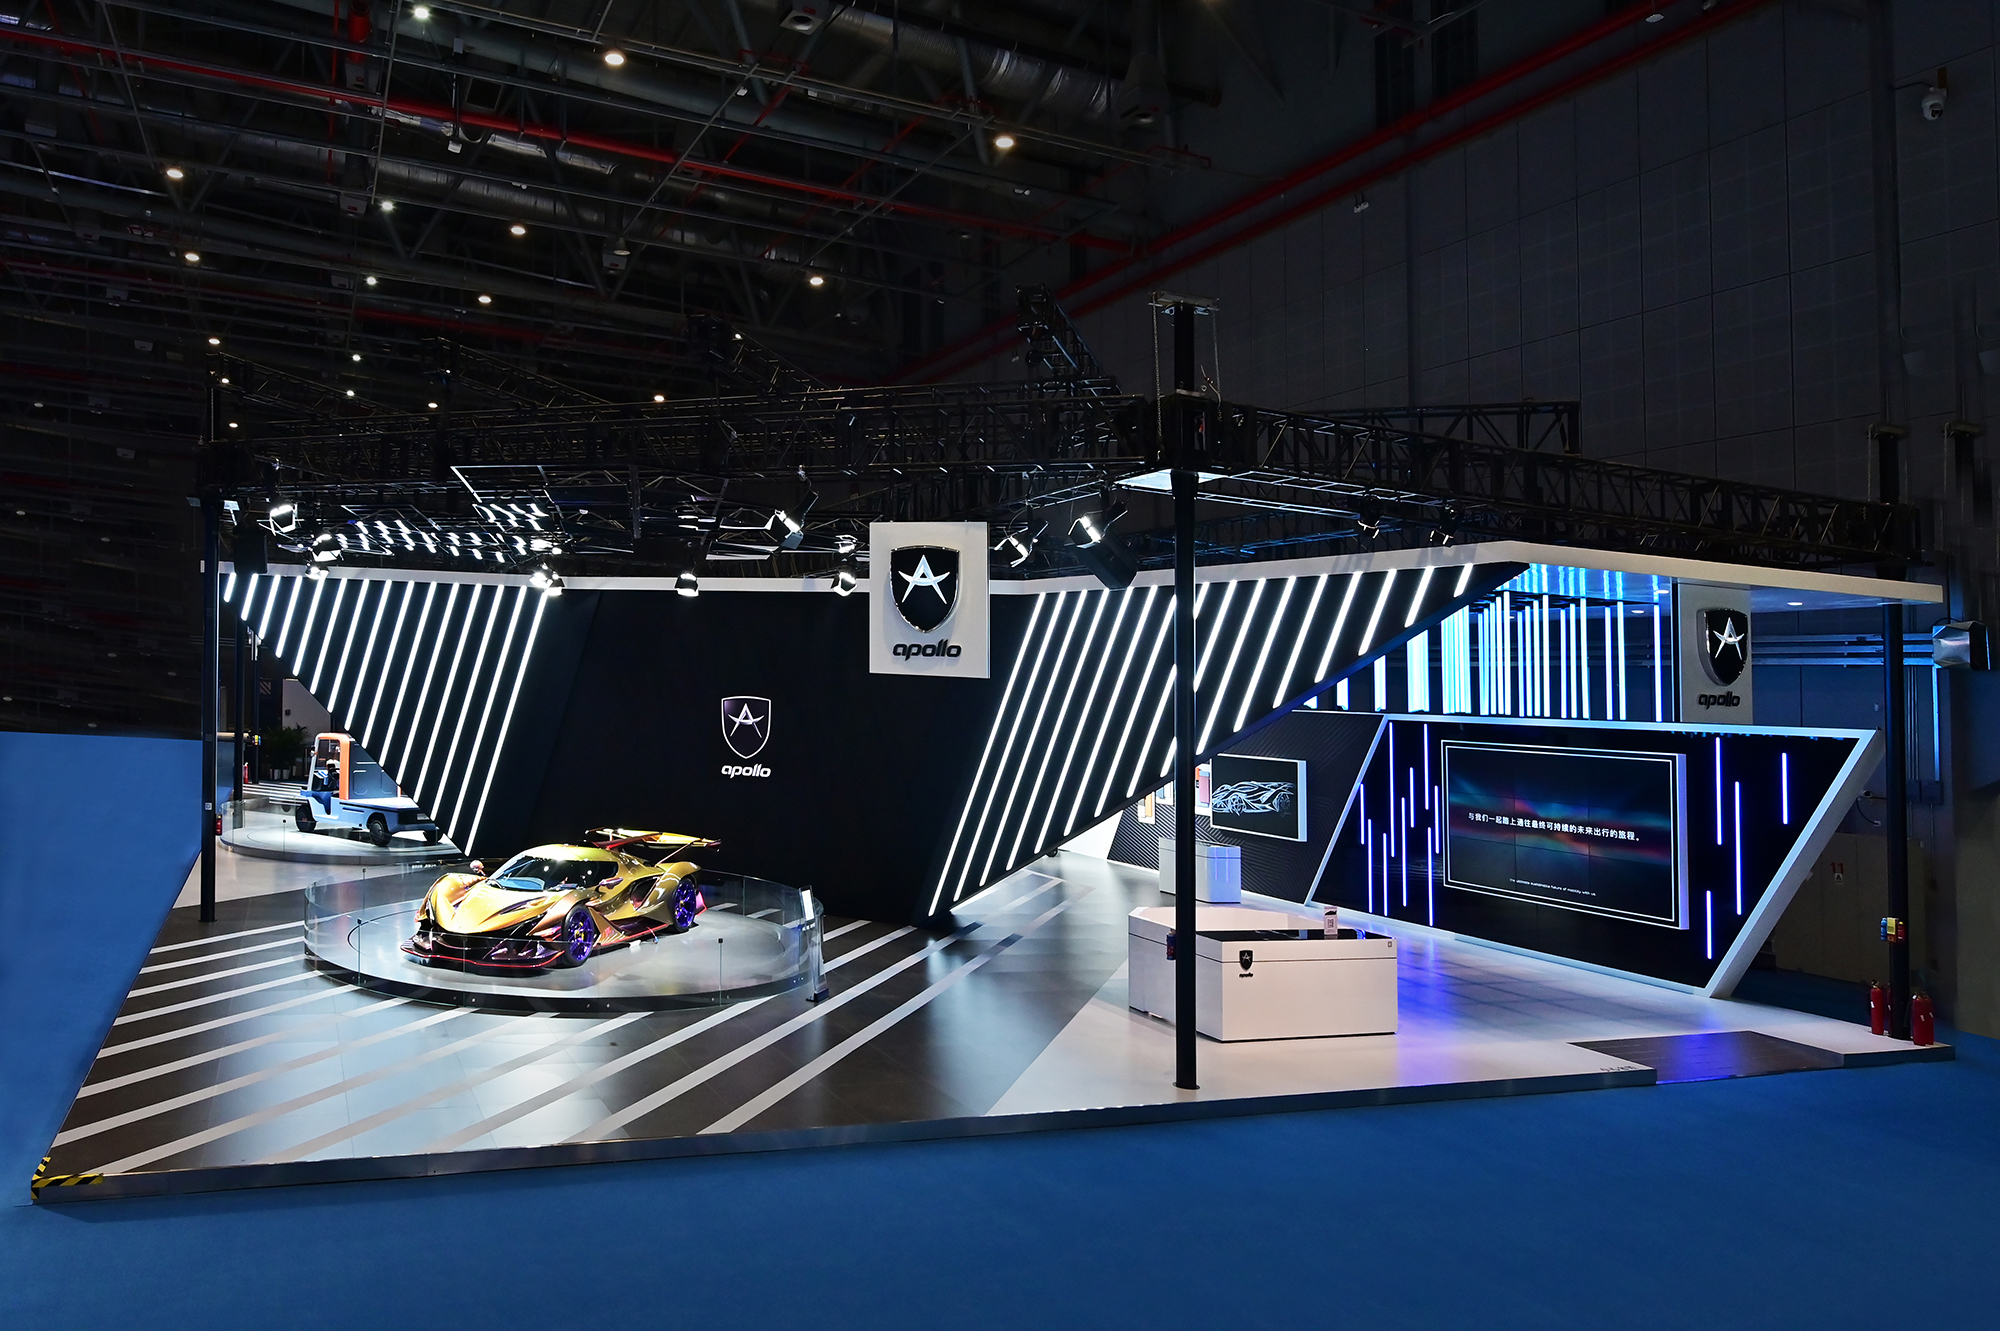 APOLLO FUTURE MOBILITY GROUP Unveils Latest Mobility Innovations on Opening Day of CIIE